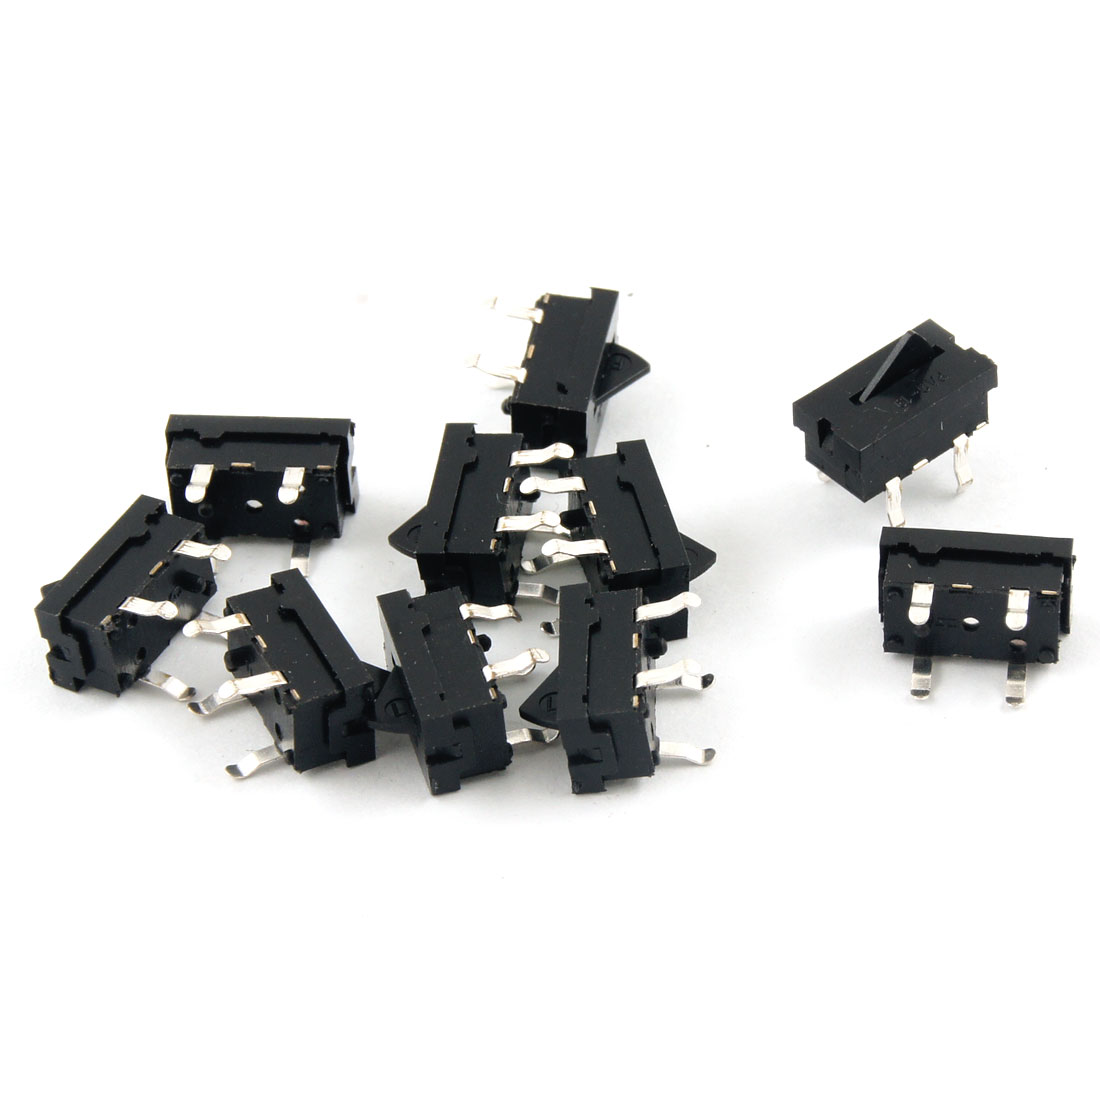 10 Pcs 4 Terminals DC 5V 0.1-1mA SPST NO Momentary Mini VCD DVD Assist Switch